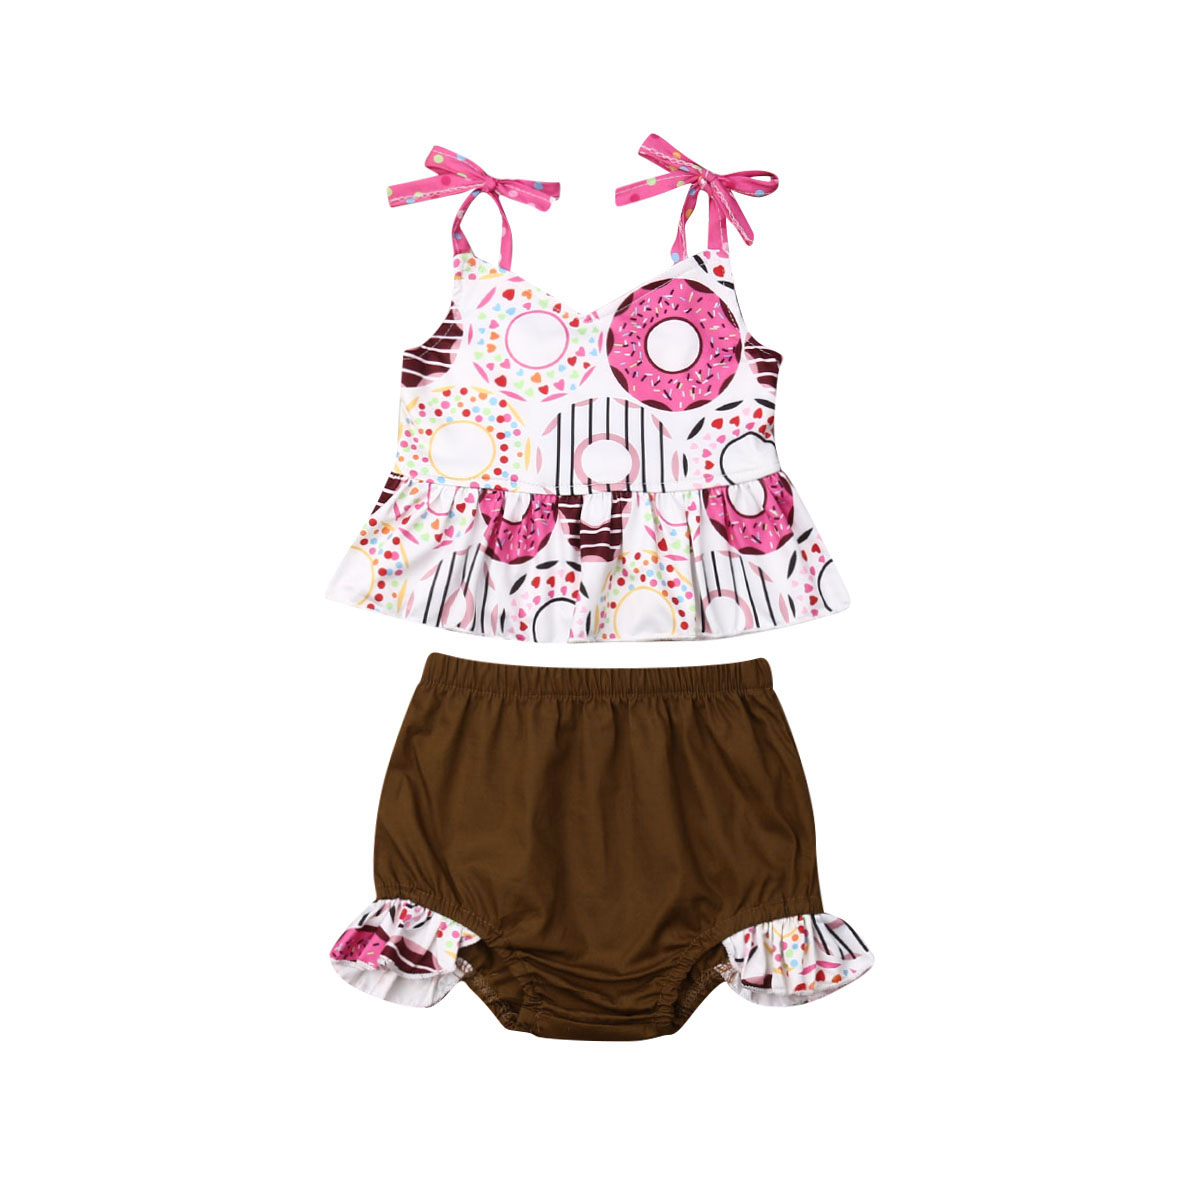 MIOIM 2PCS Infant Toddler Baby Girls Summer Clothes Set Tassel Crop Tops Shorts Bottom Outfits